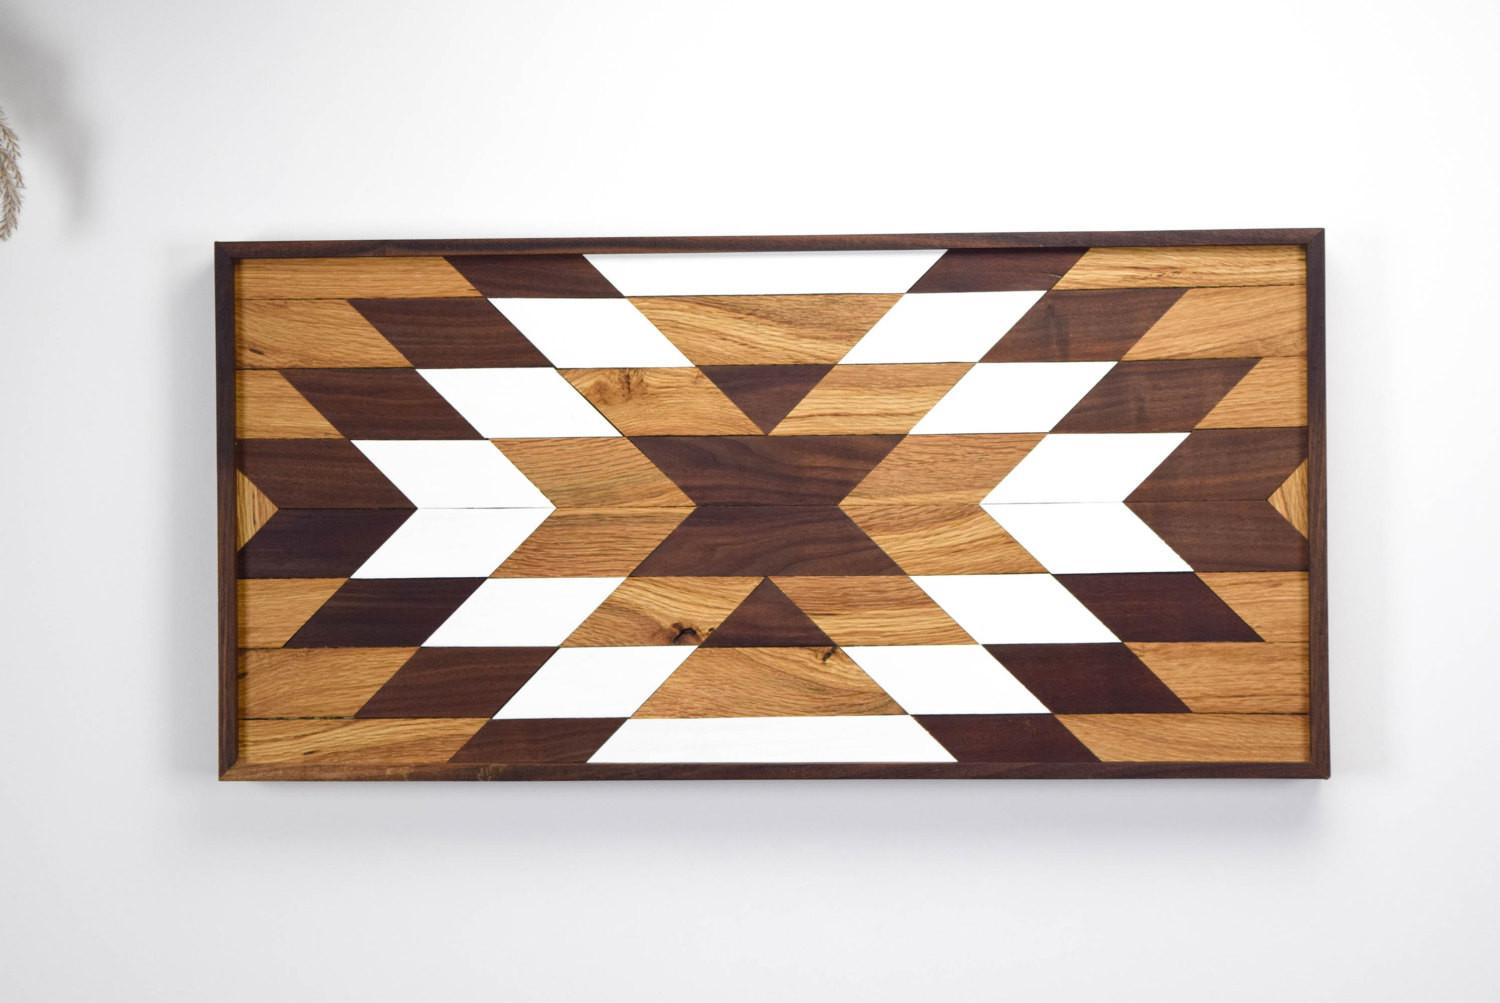 Wood Wall Art Wooden Geometric